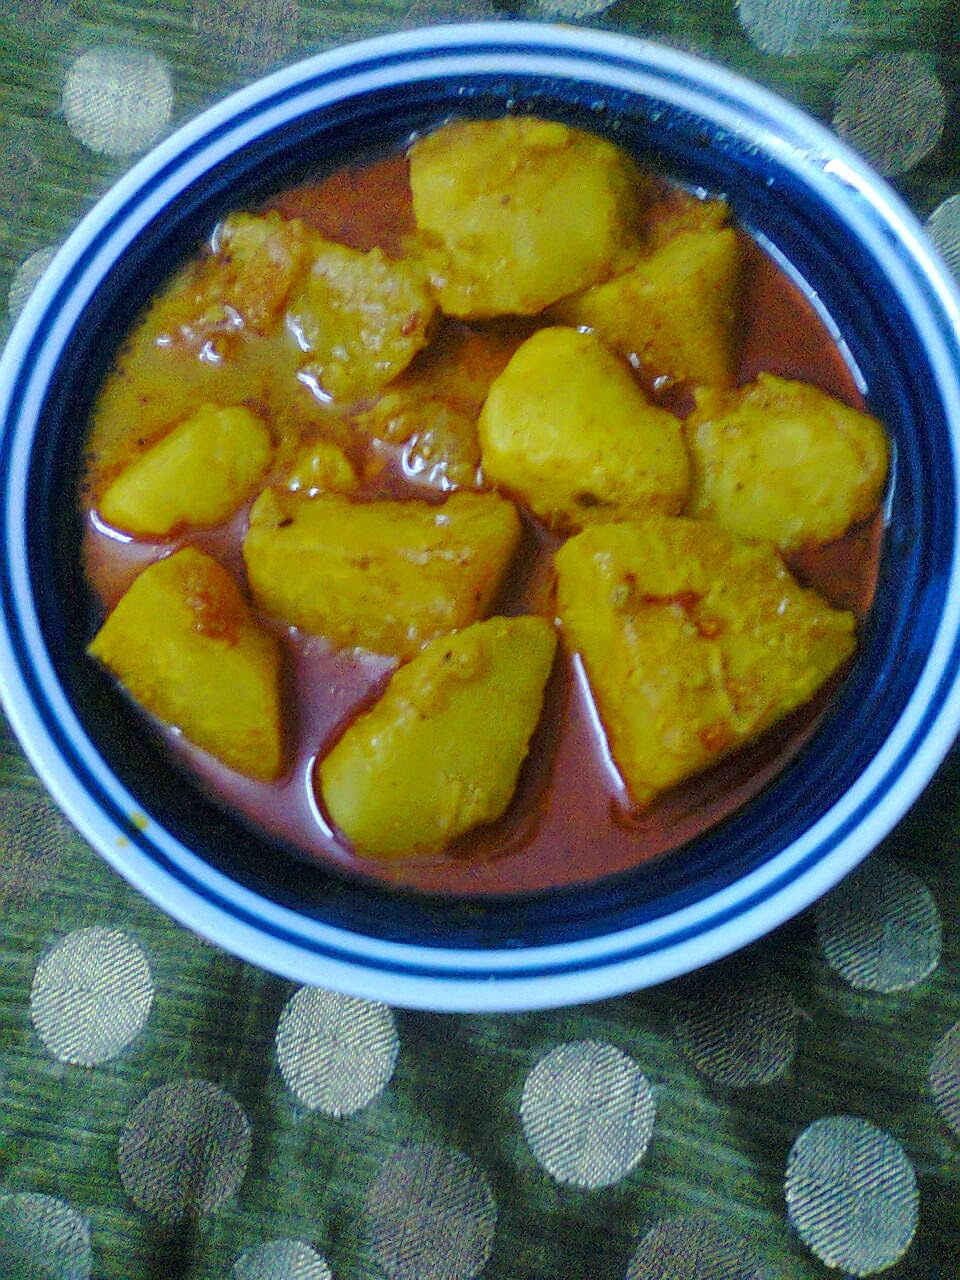 Delicious side dish turnip gravybengali shalgam curry a delicious side dish recipe made with turnip bengal it is called shalgam it is a quick and easy to make recipe generally made in winter season forumfinder Images